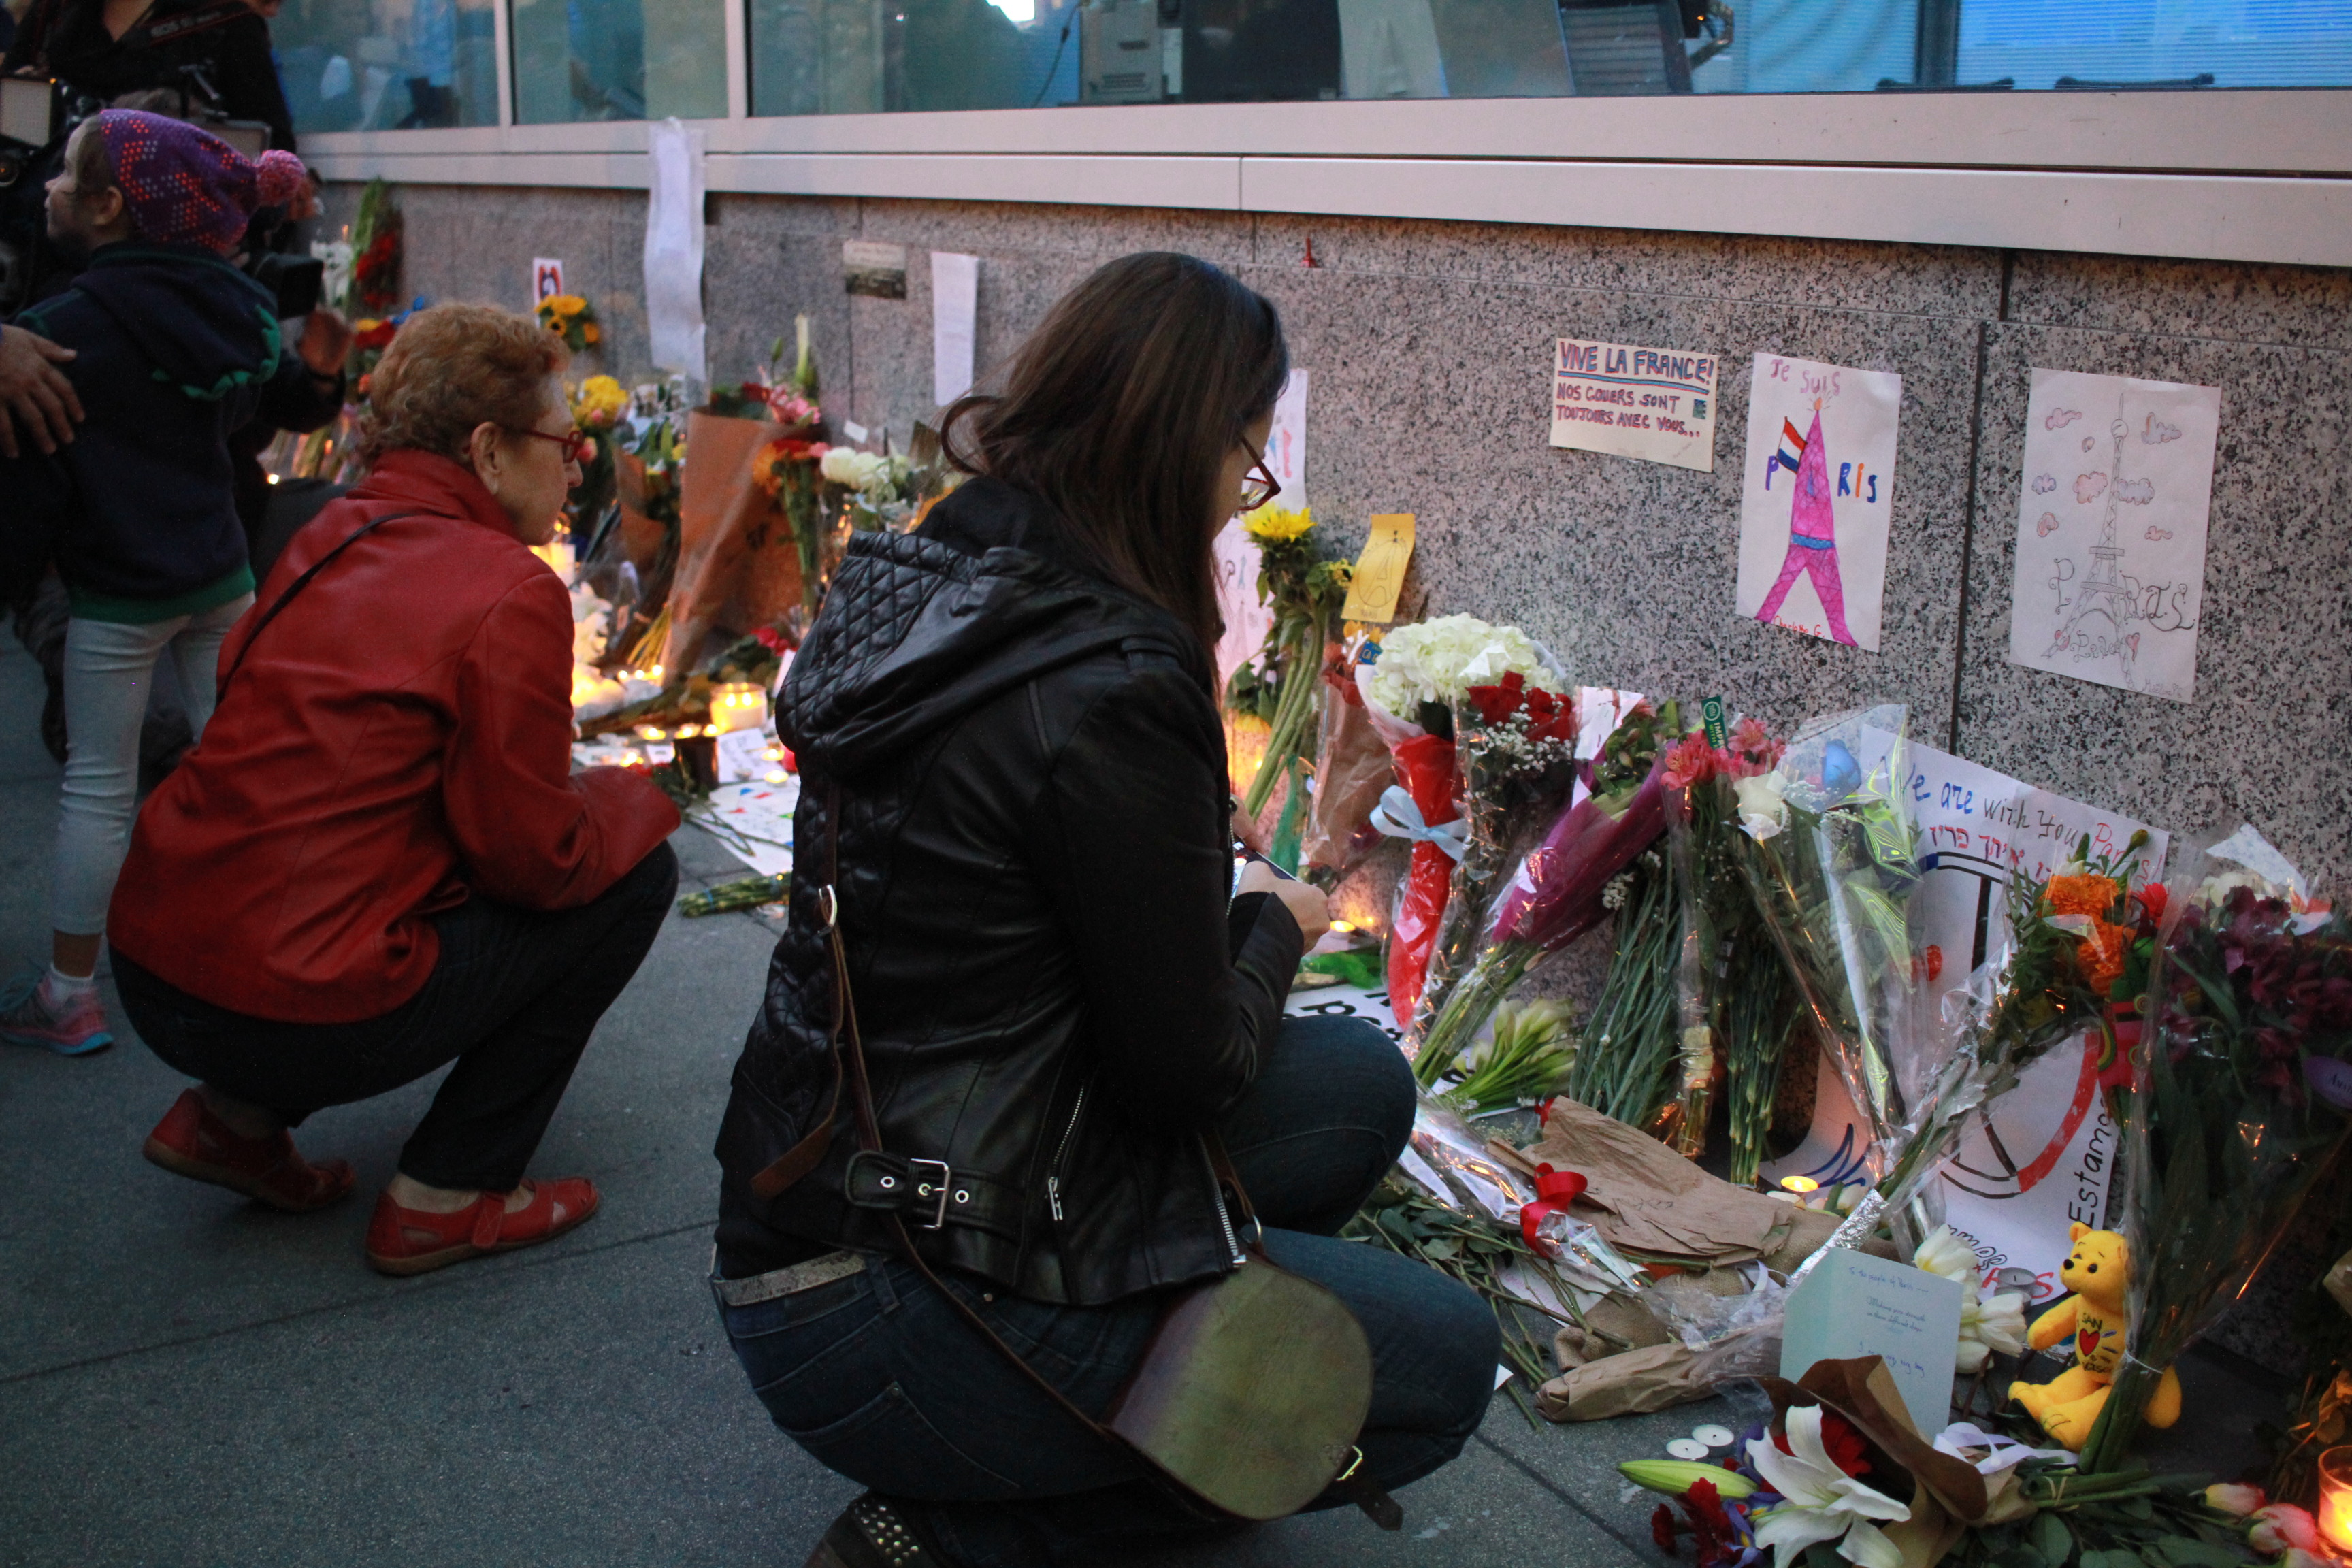 Hundreds gather in San Francisco to mourn victims of French tragedy